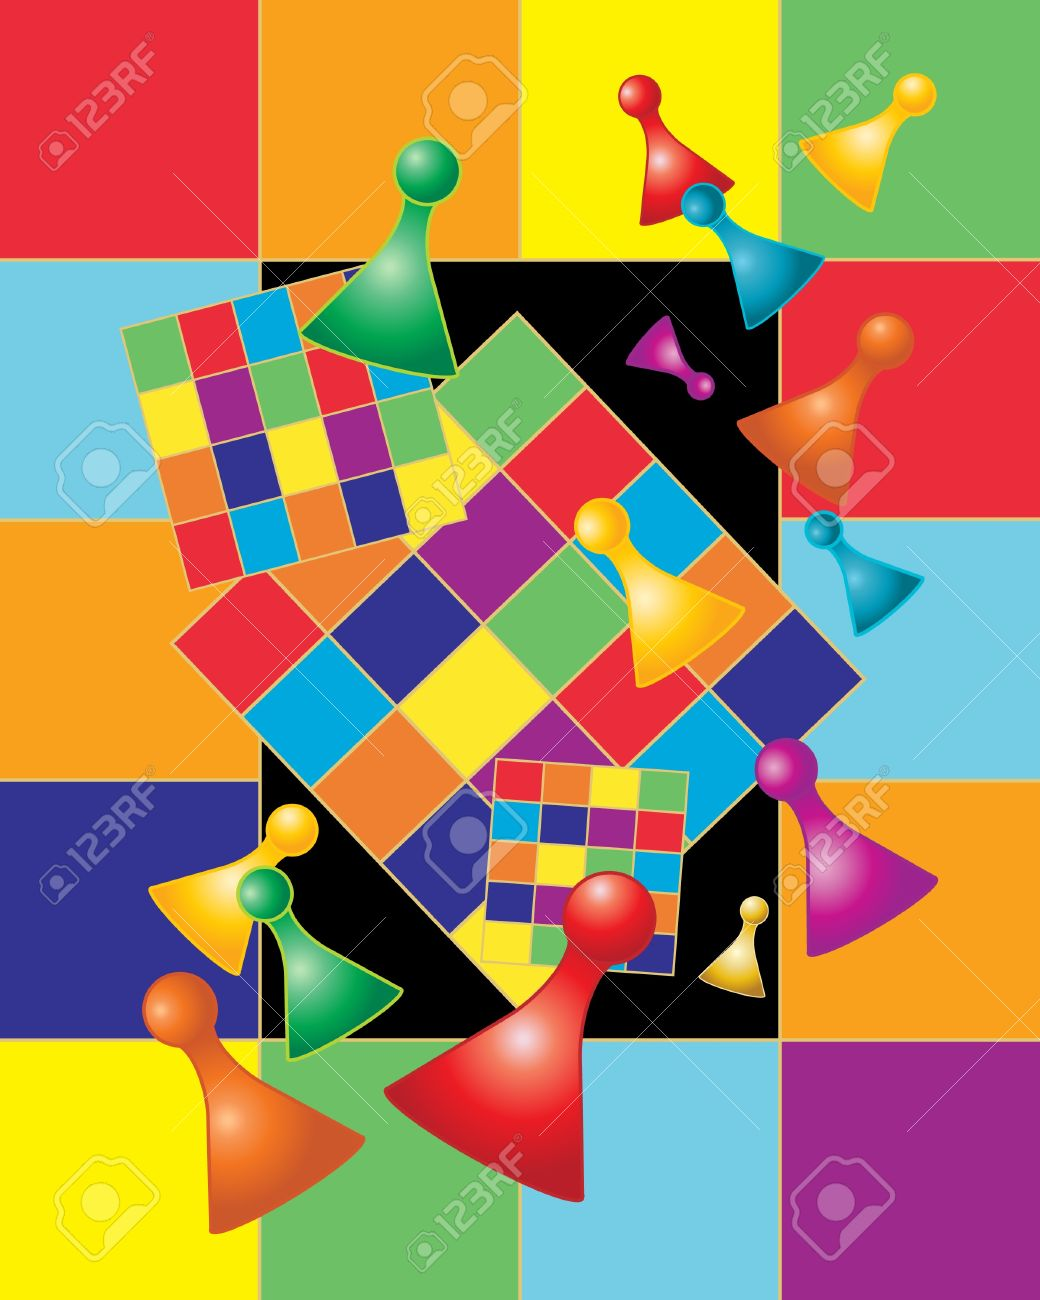 An Illustration Of A Board Game With Game Pieces In Rainbow Colors